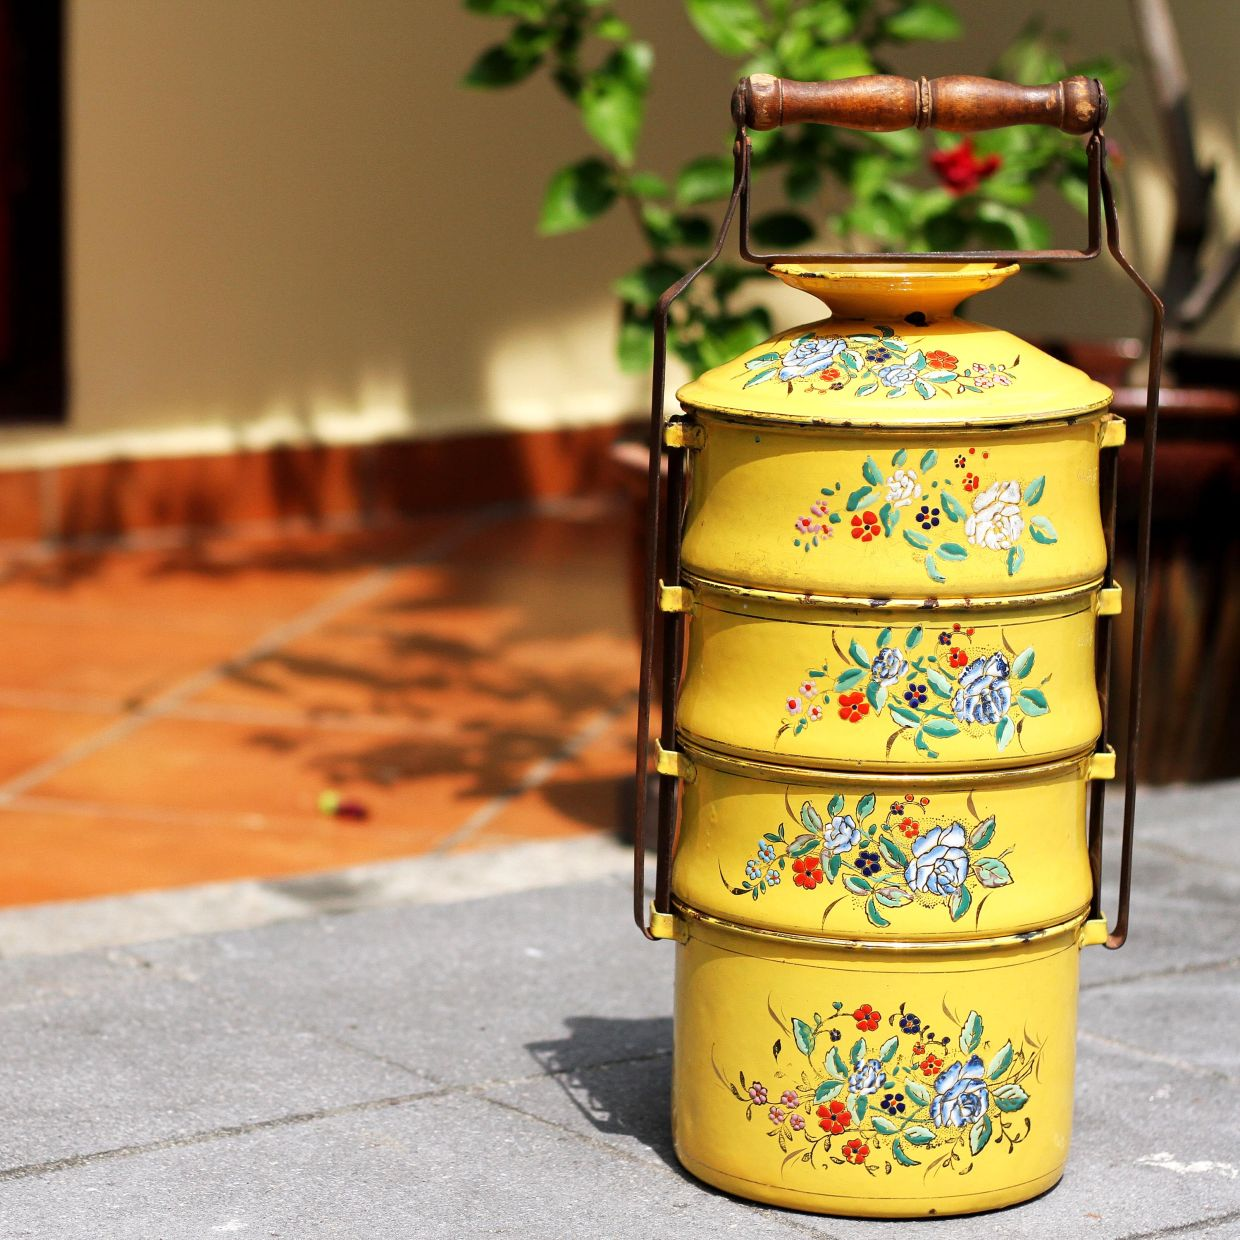 A 1920s tiffin manufactured by Katz Brothers made from enamel with a wooden handle and an iron locking mechanism. Both sides of this tiffin are adorned with hand-drawn floral designs. Due to its colour and design, it is one of the rarest pieces available in the market. Photo: Umachandran Ramiah